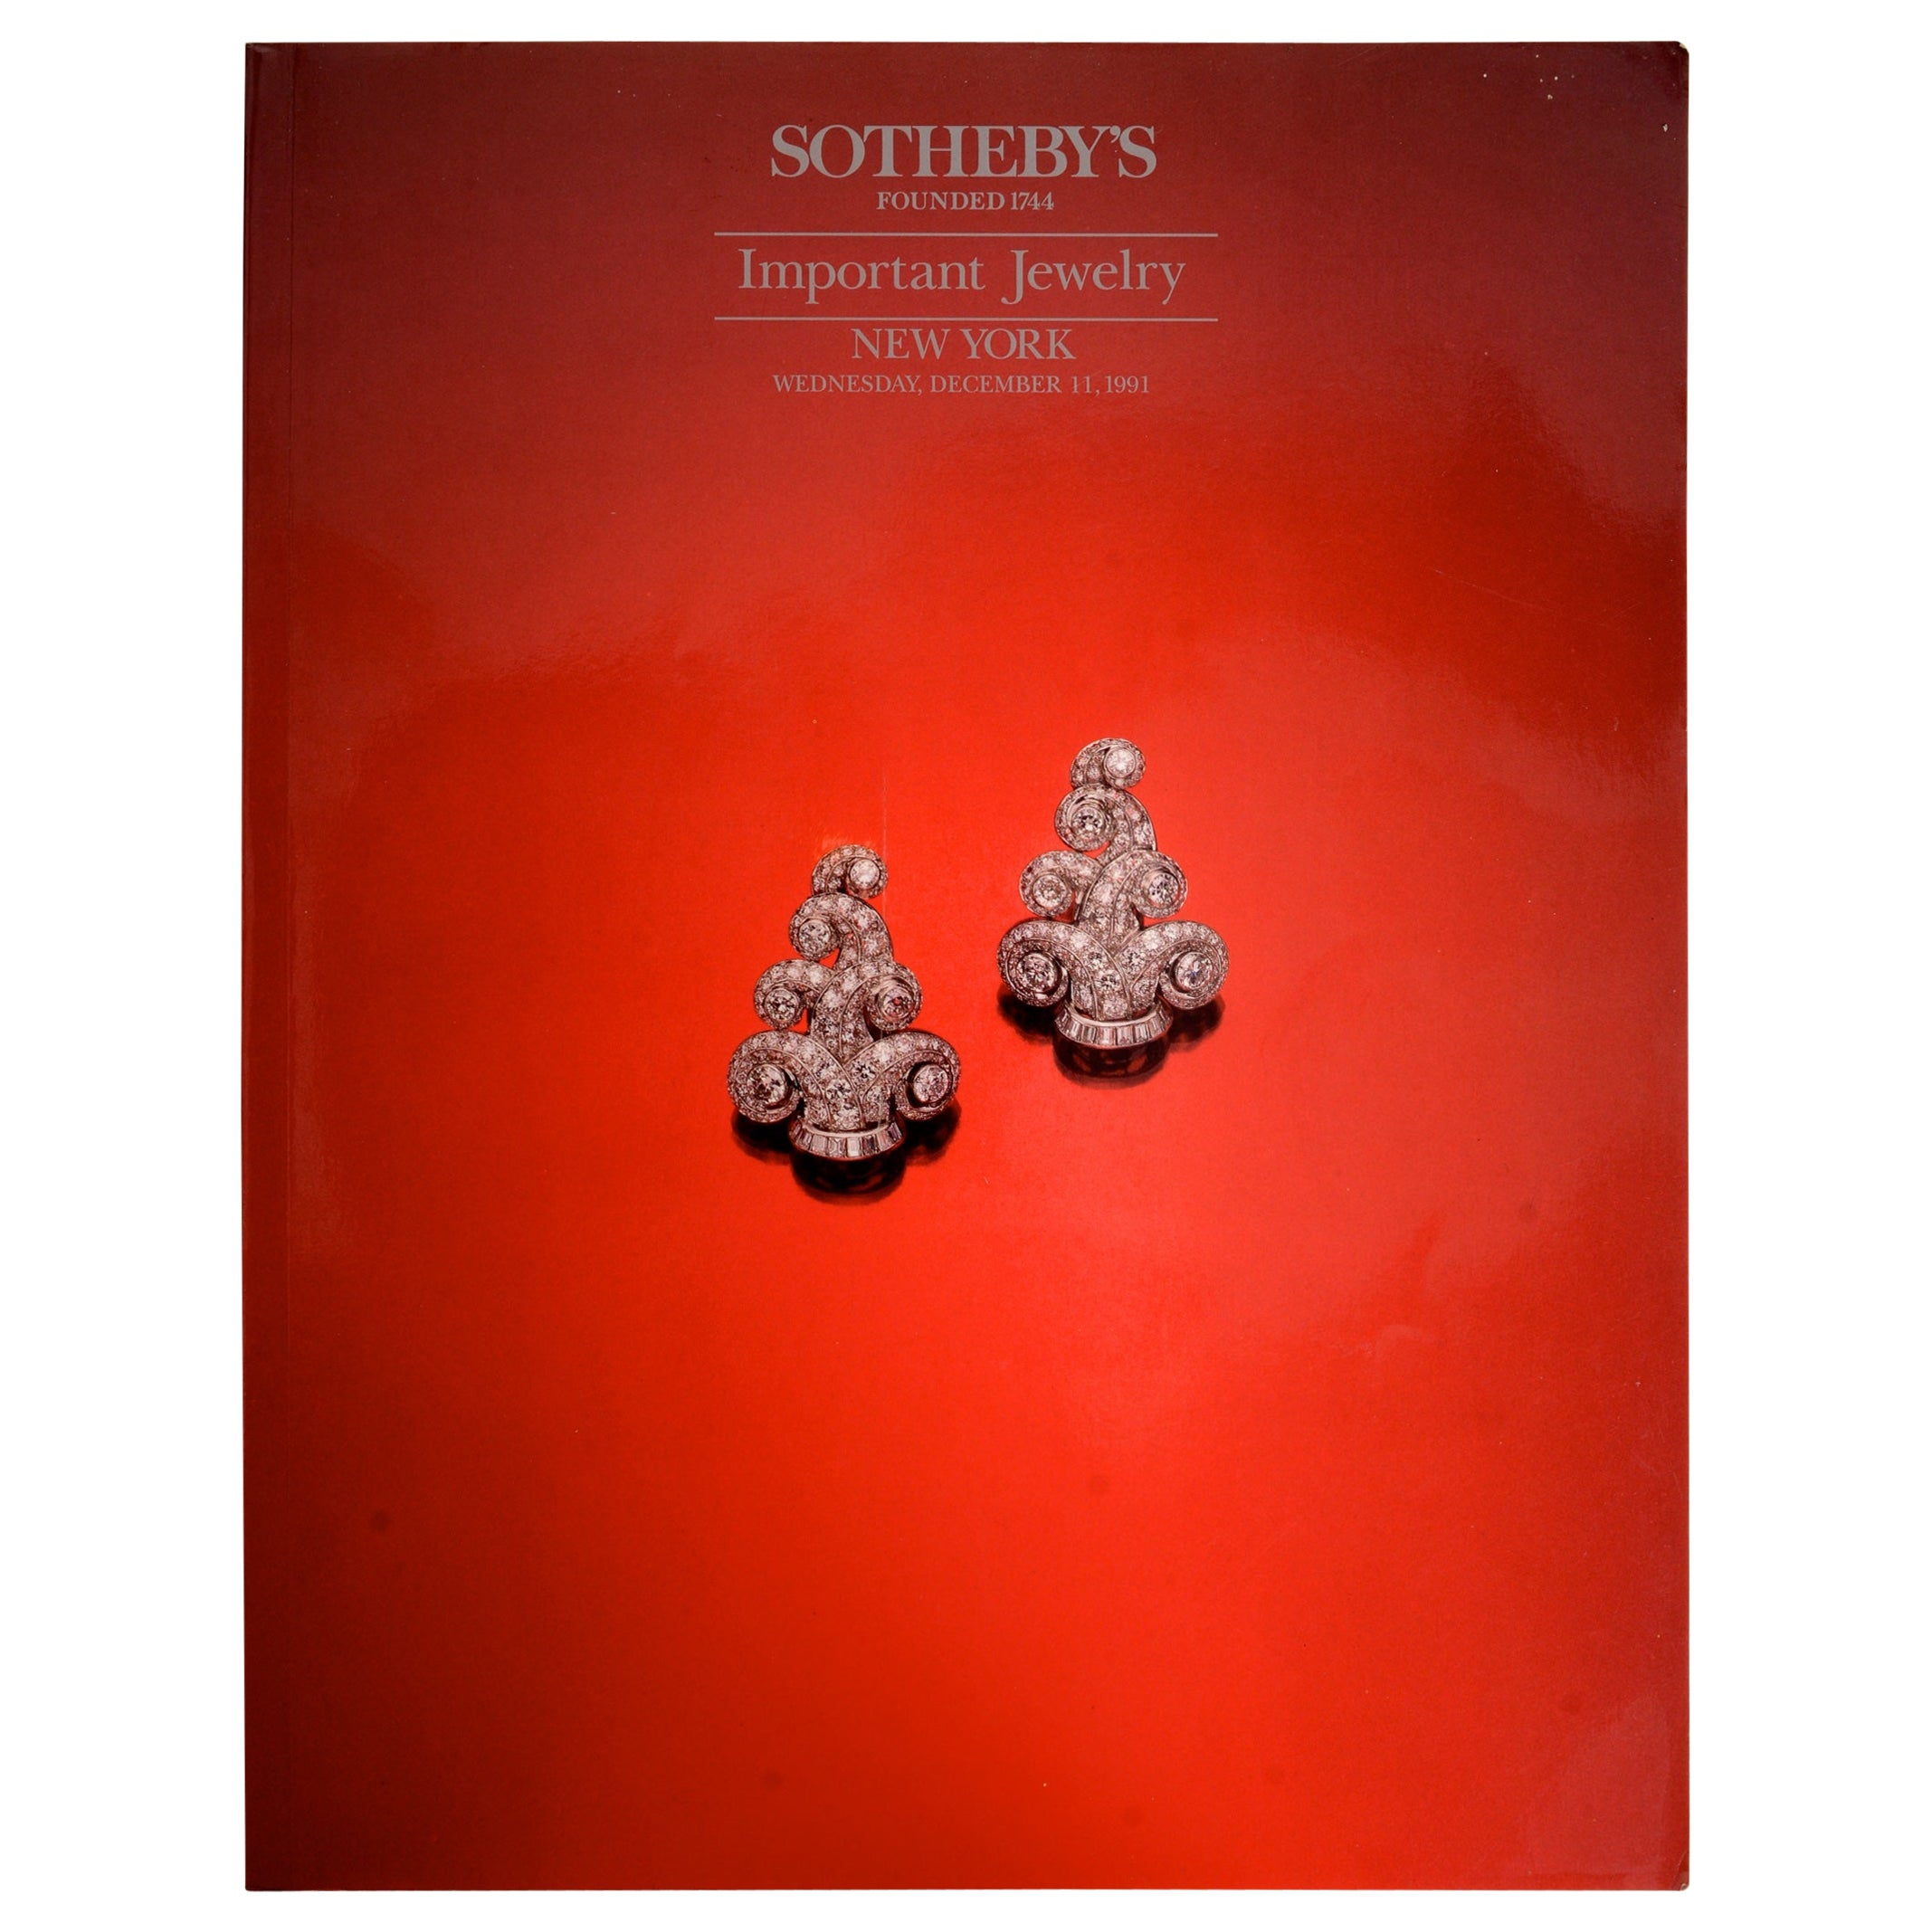 Sotheby's New York Important Jewelry 6254 December 11, 1991, First Edition